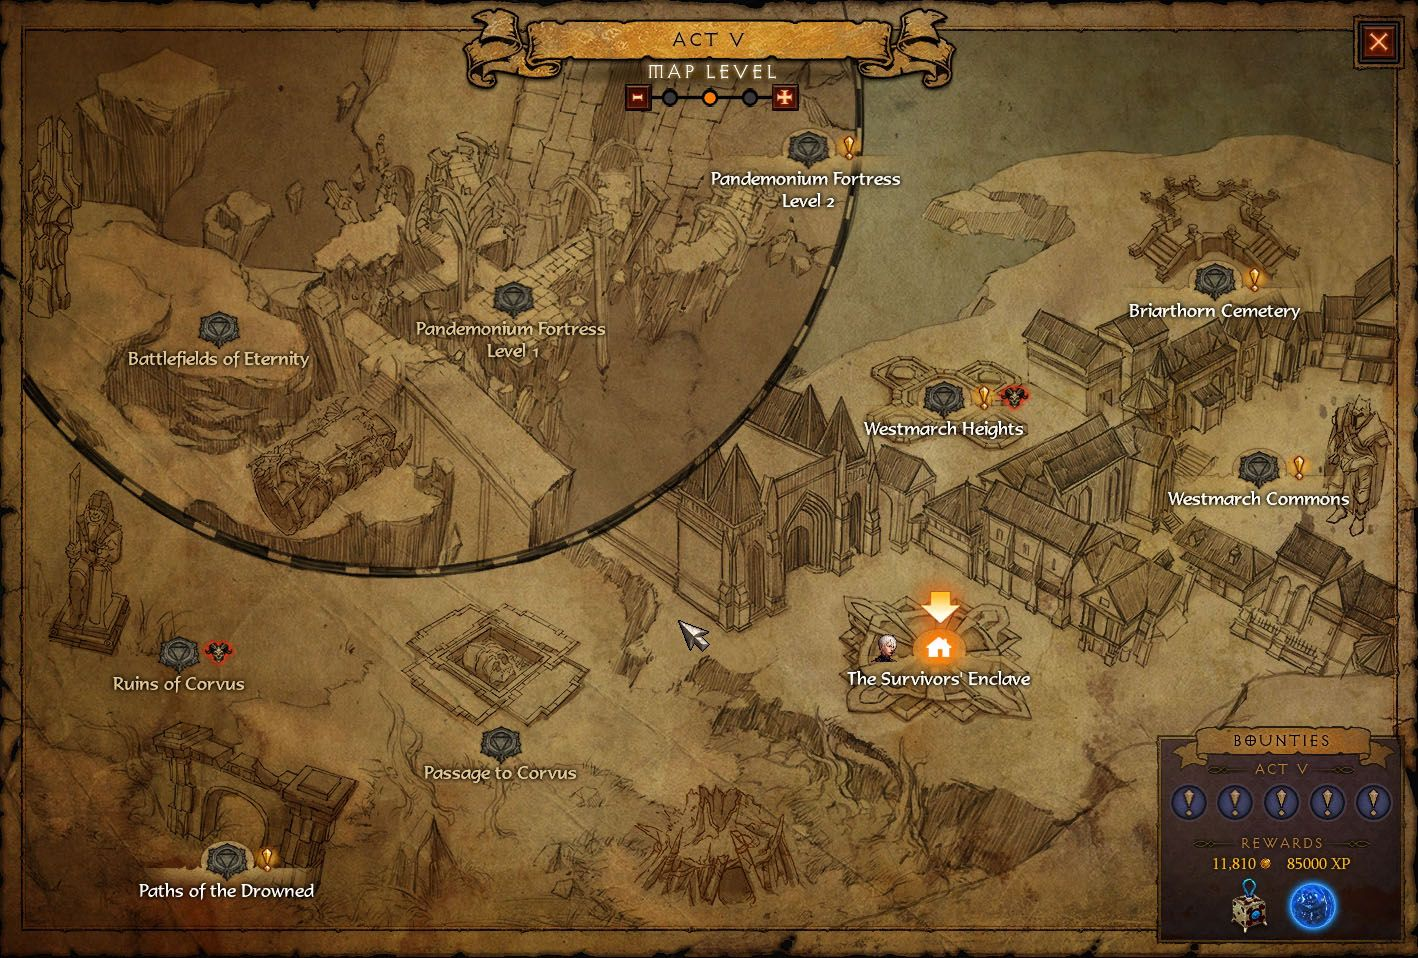 Towns too hard to see on new diablo 3 waypoint map fans suggest towns too hard to see on new diablo 3 waypoint map fans suggest easier visuals gumiabroncs Images